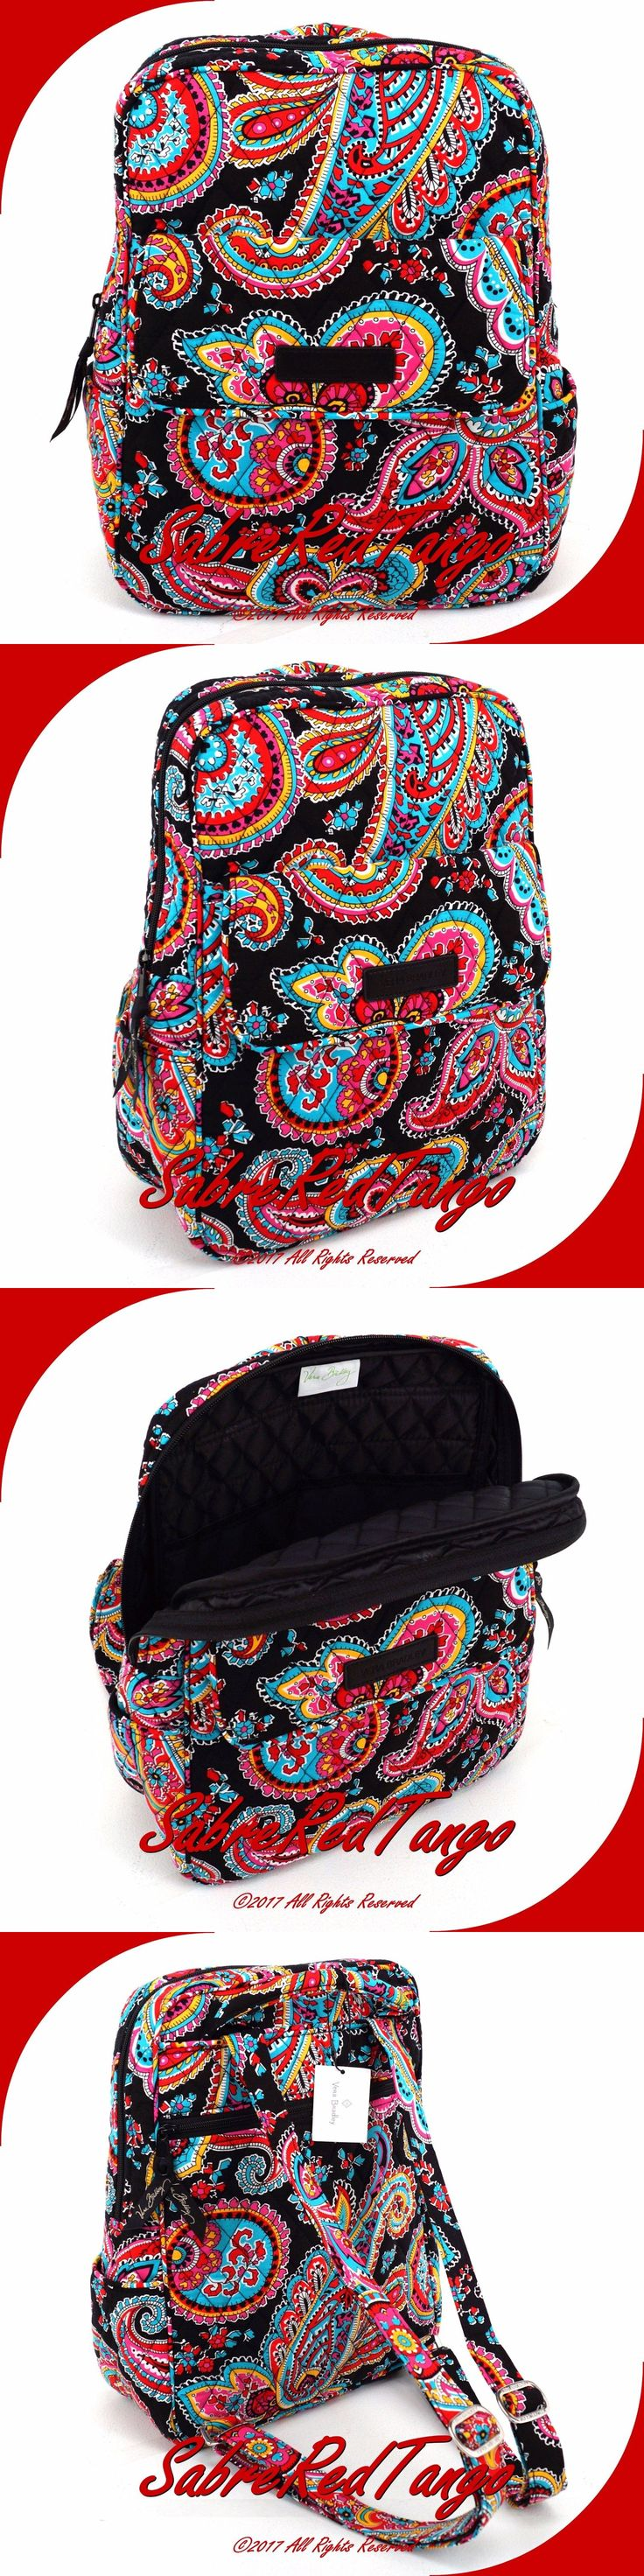 Backpacks and Bookbags 169292: Nwt Vera Bradley Quilted Small Petite Backpack Bag Purse Floral Parisian Paisley -> BUY IT NOW ONLY: $49.99 on eBay!